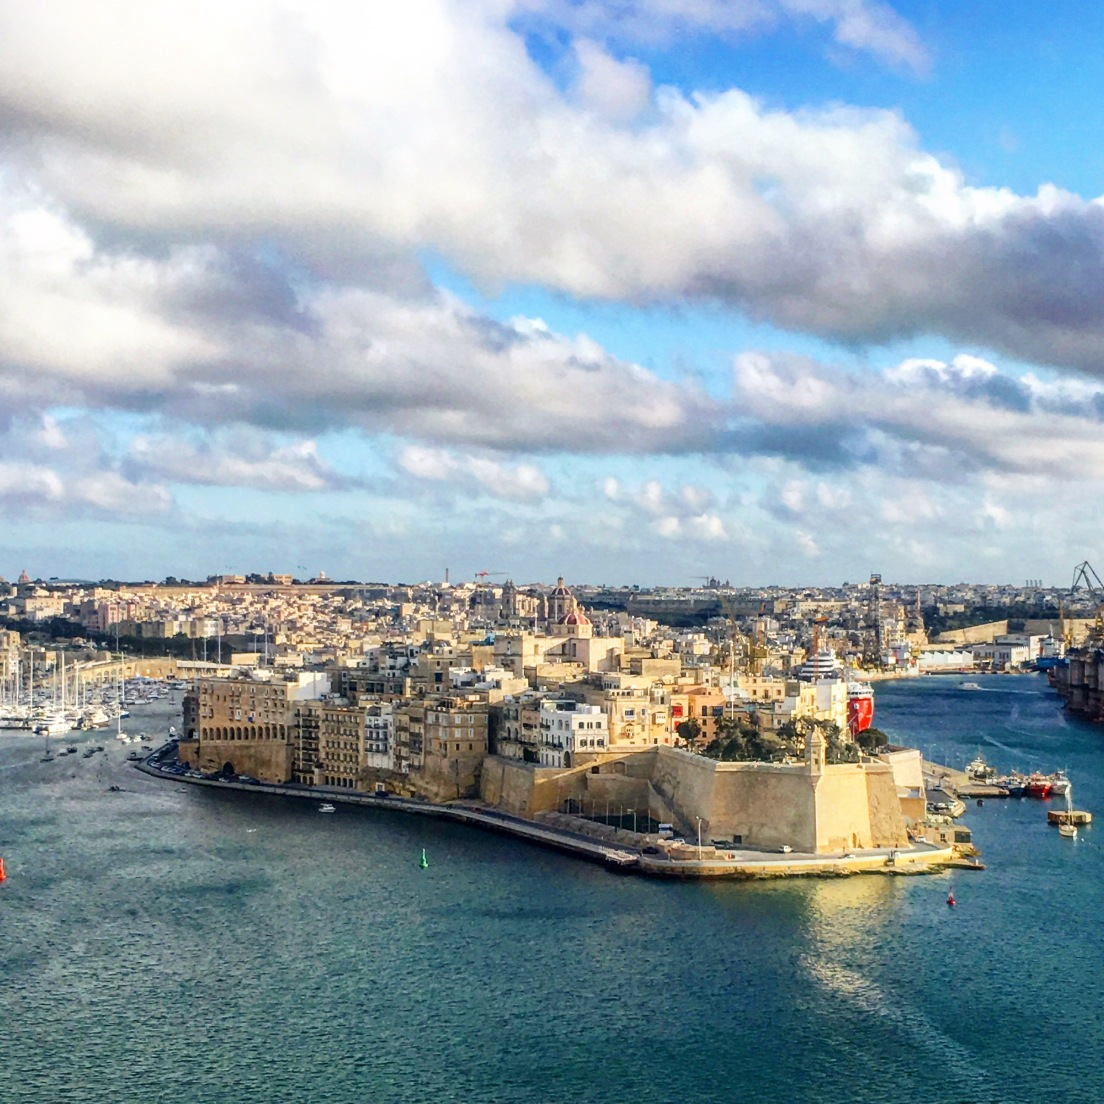 View of Birgu from Valletta